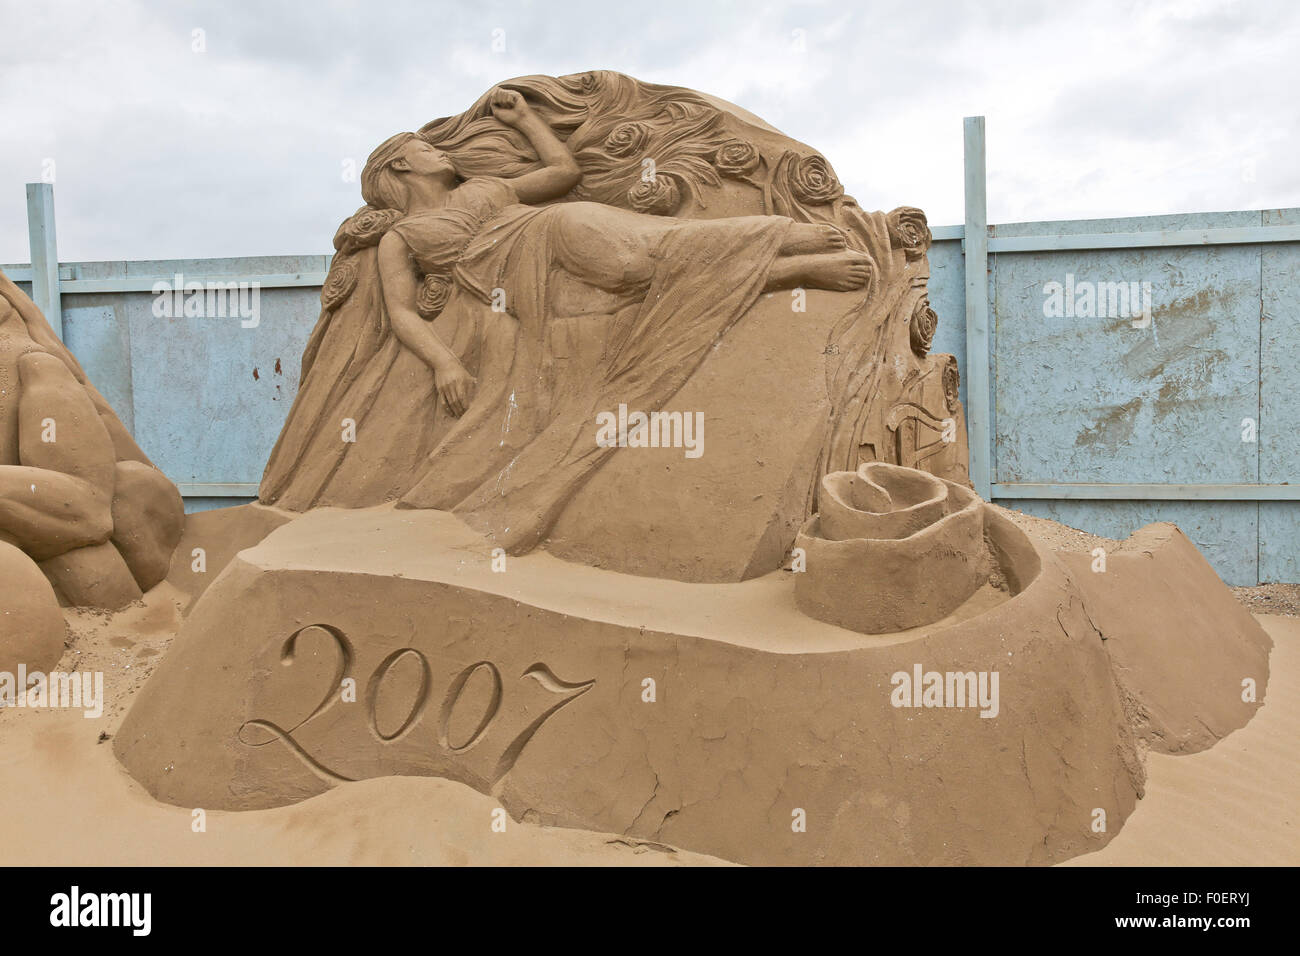 Sand Sculptures at Weston-Super-Mare - Stock Image